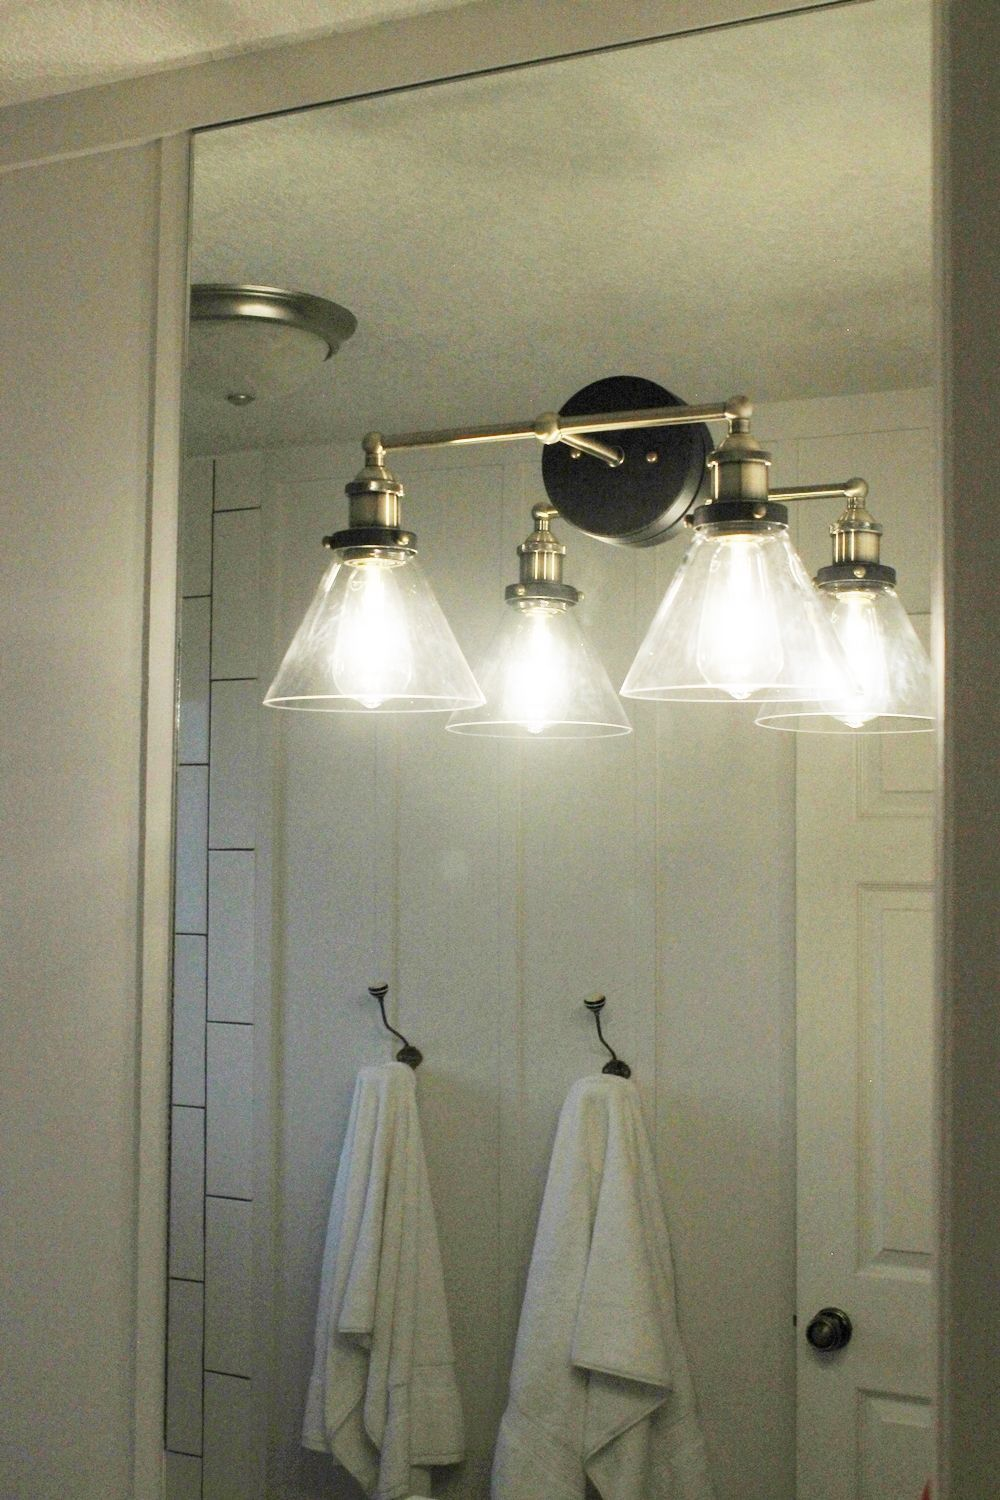 How To Mount A Light On Top Of Mirror Bathroom Vanity Diy Electrical Wiring Add Lighting Fixture